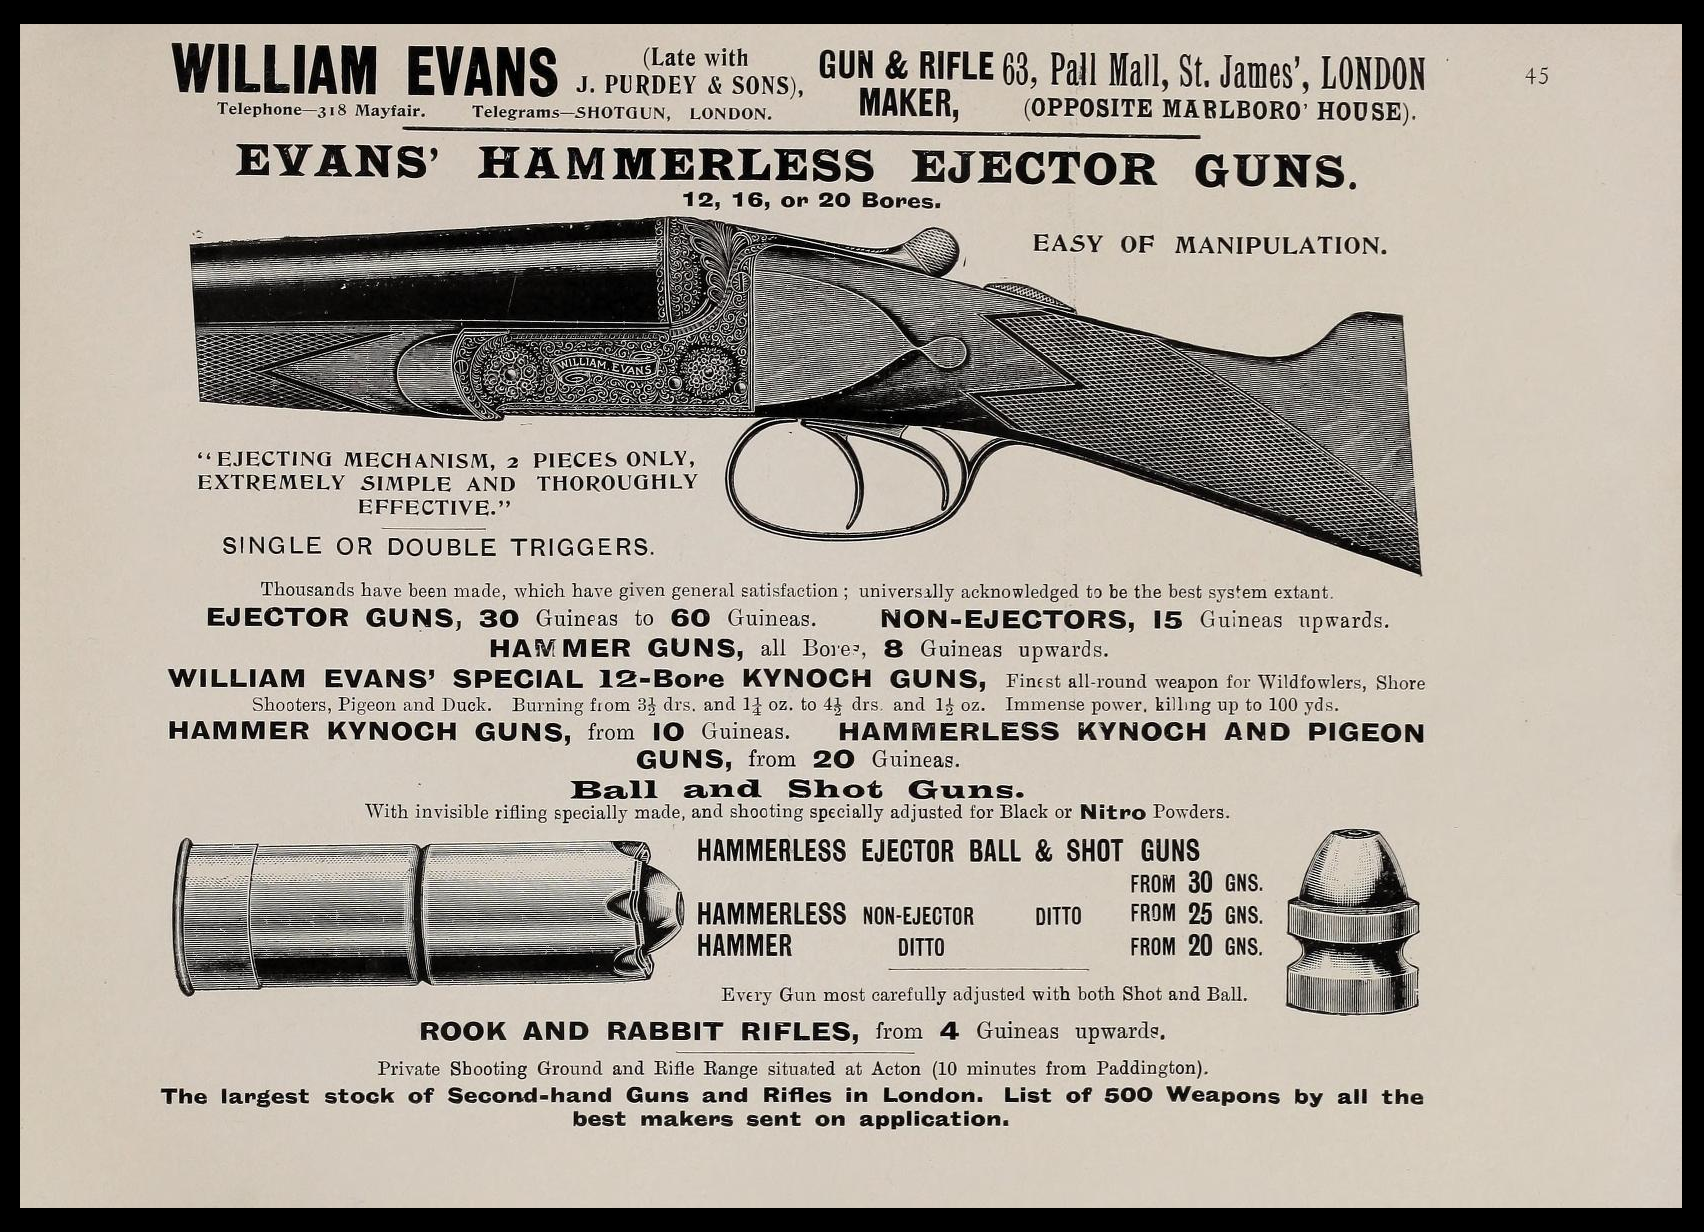 William Evans Firearm Advertisement - 1905 #1.png